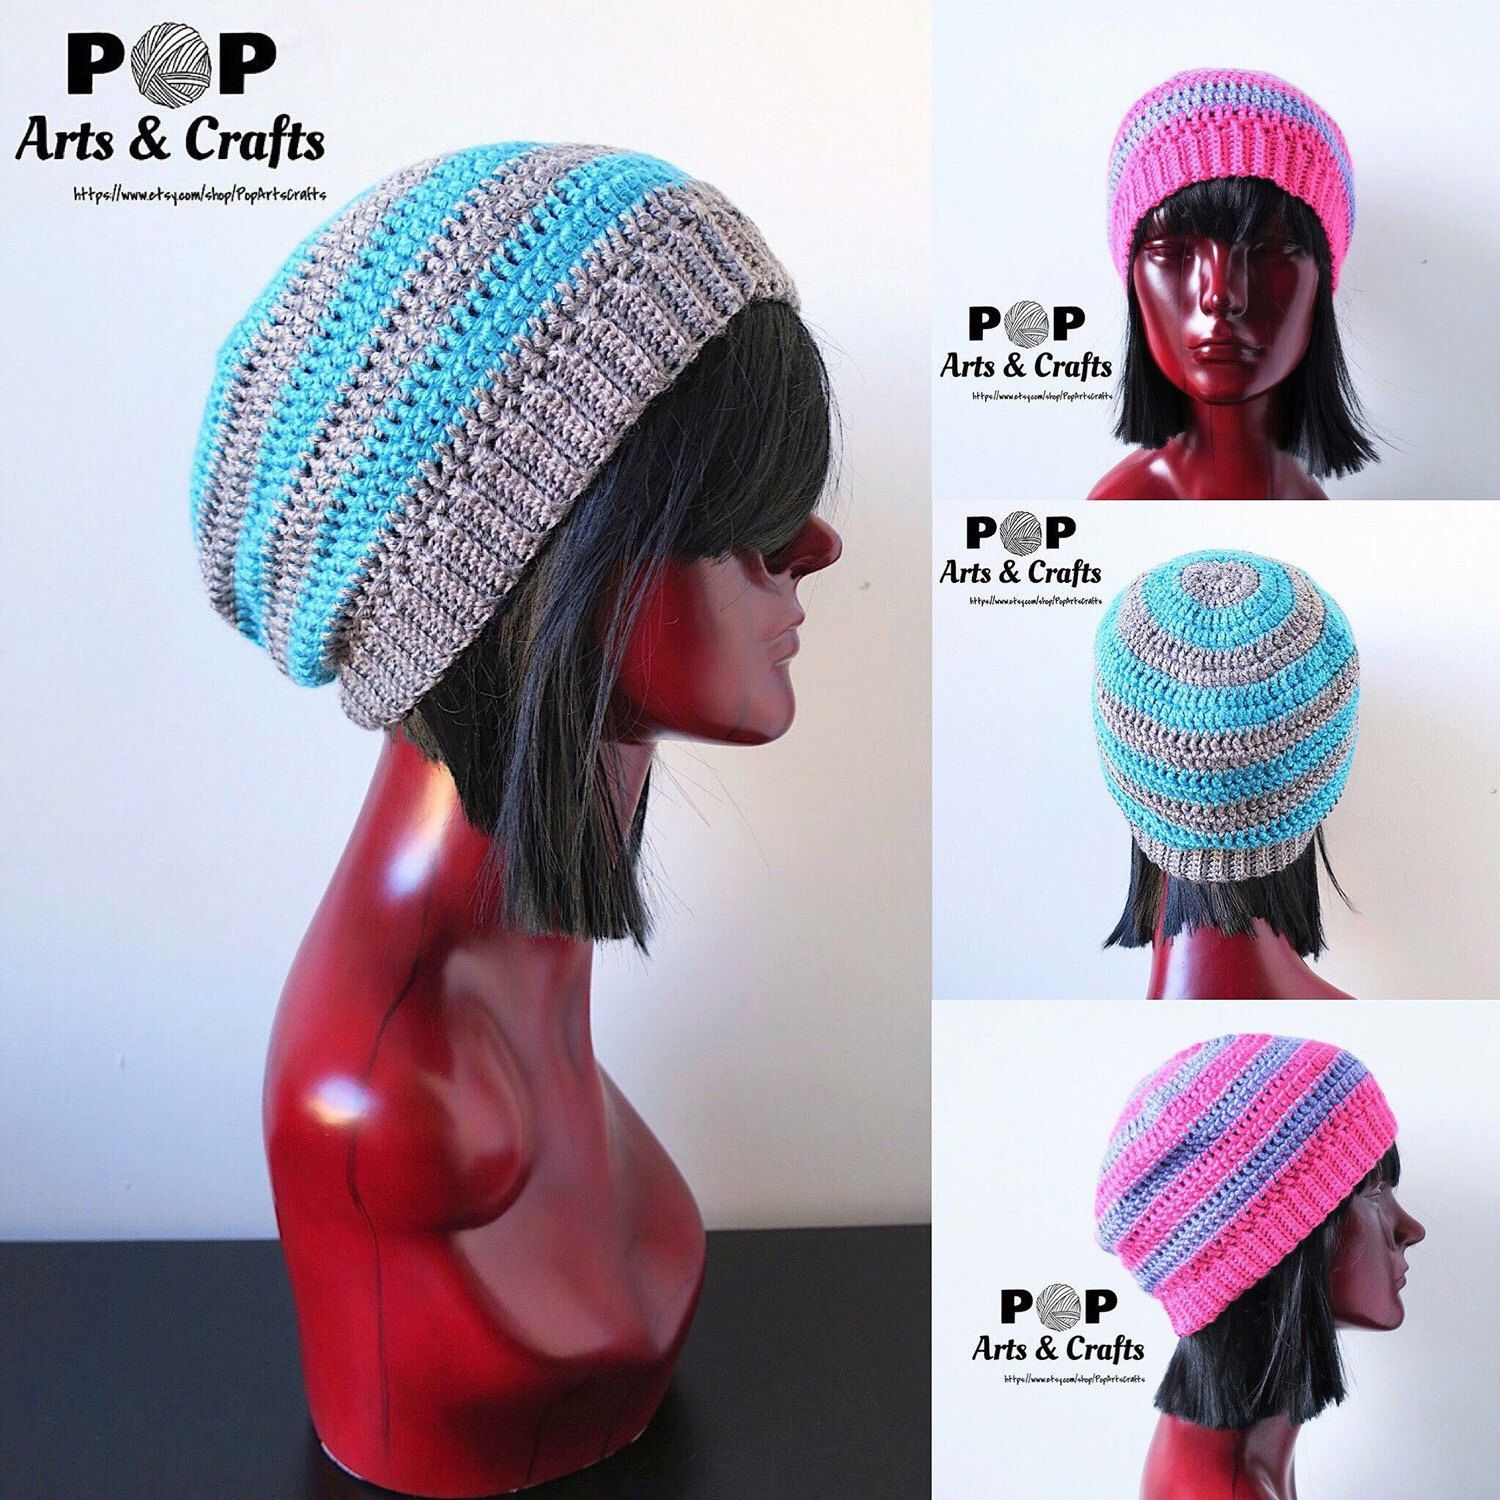 e42fa6651b0 Have you seen some of the casual cosplay items in the shop  Check out this  beanie inspired by the Cheshire Cat! Available in two sets of colors  Blue  and ...